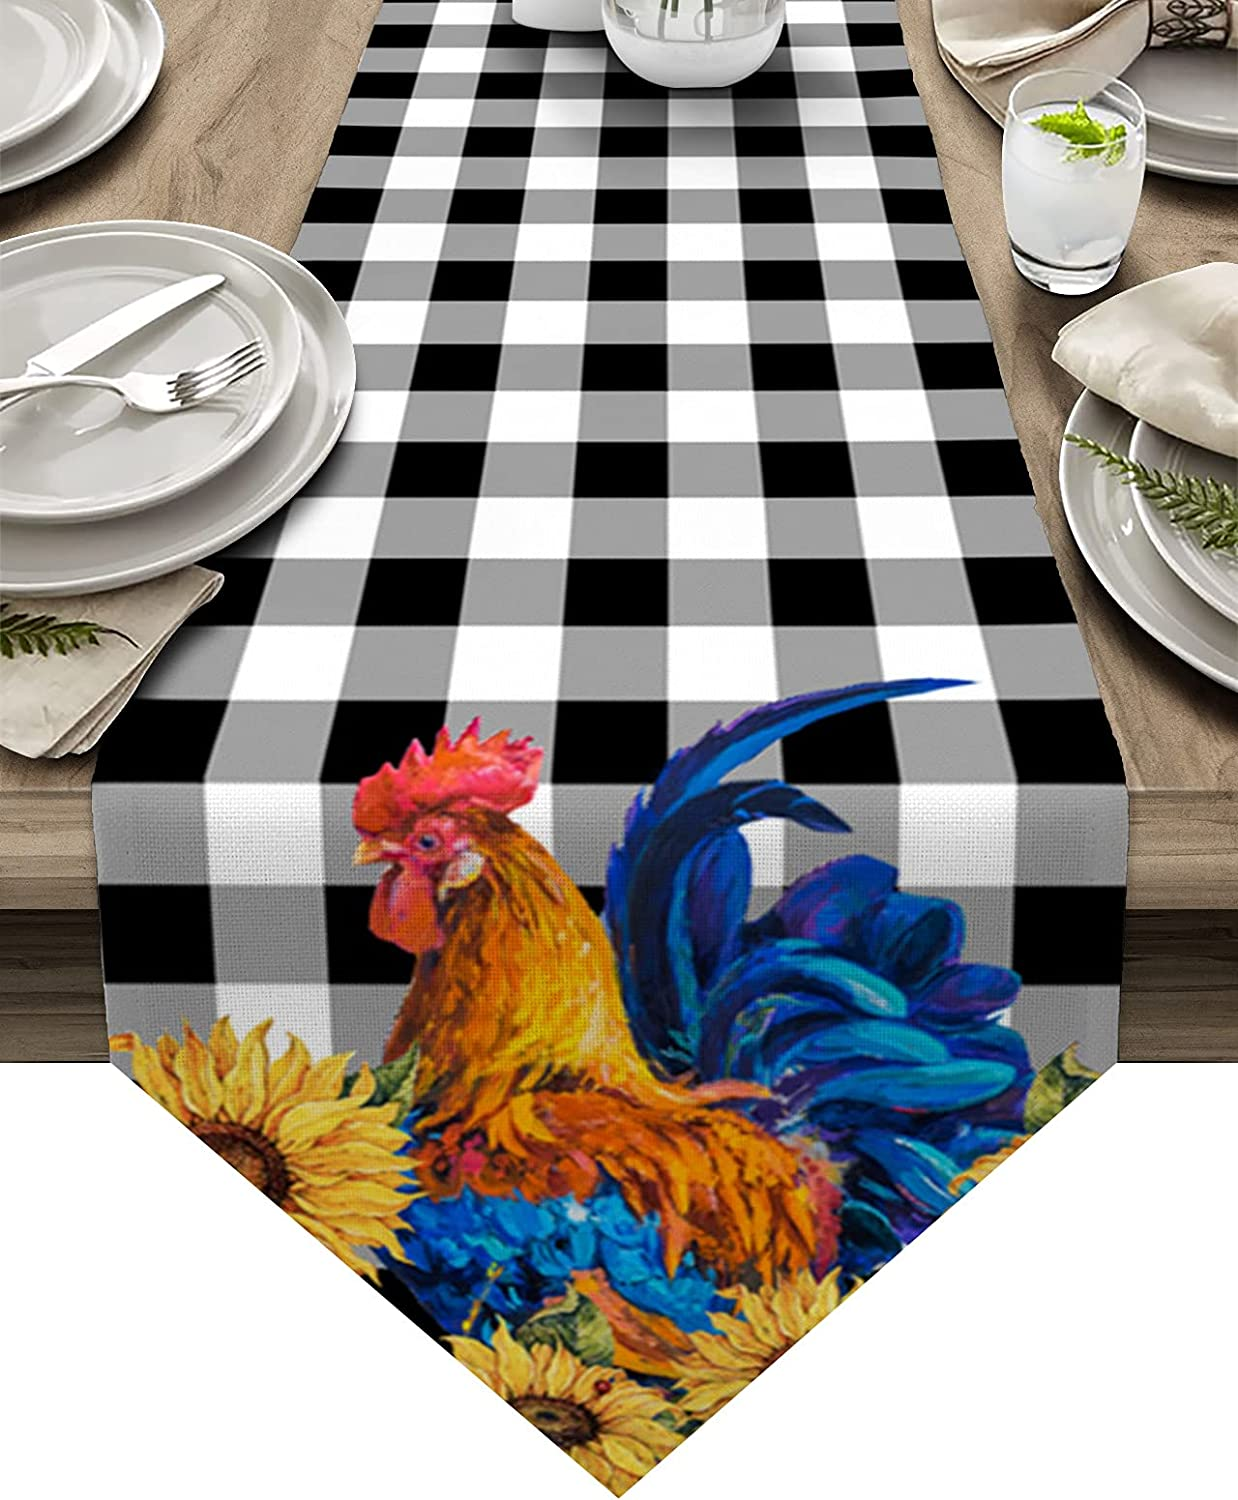 Dining Table Denver Mall Runner 108 inches Sunflower Rooster Wood Indianapolis Mall Long Farm